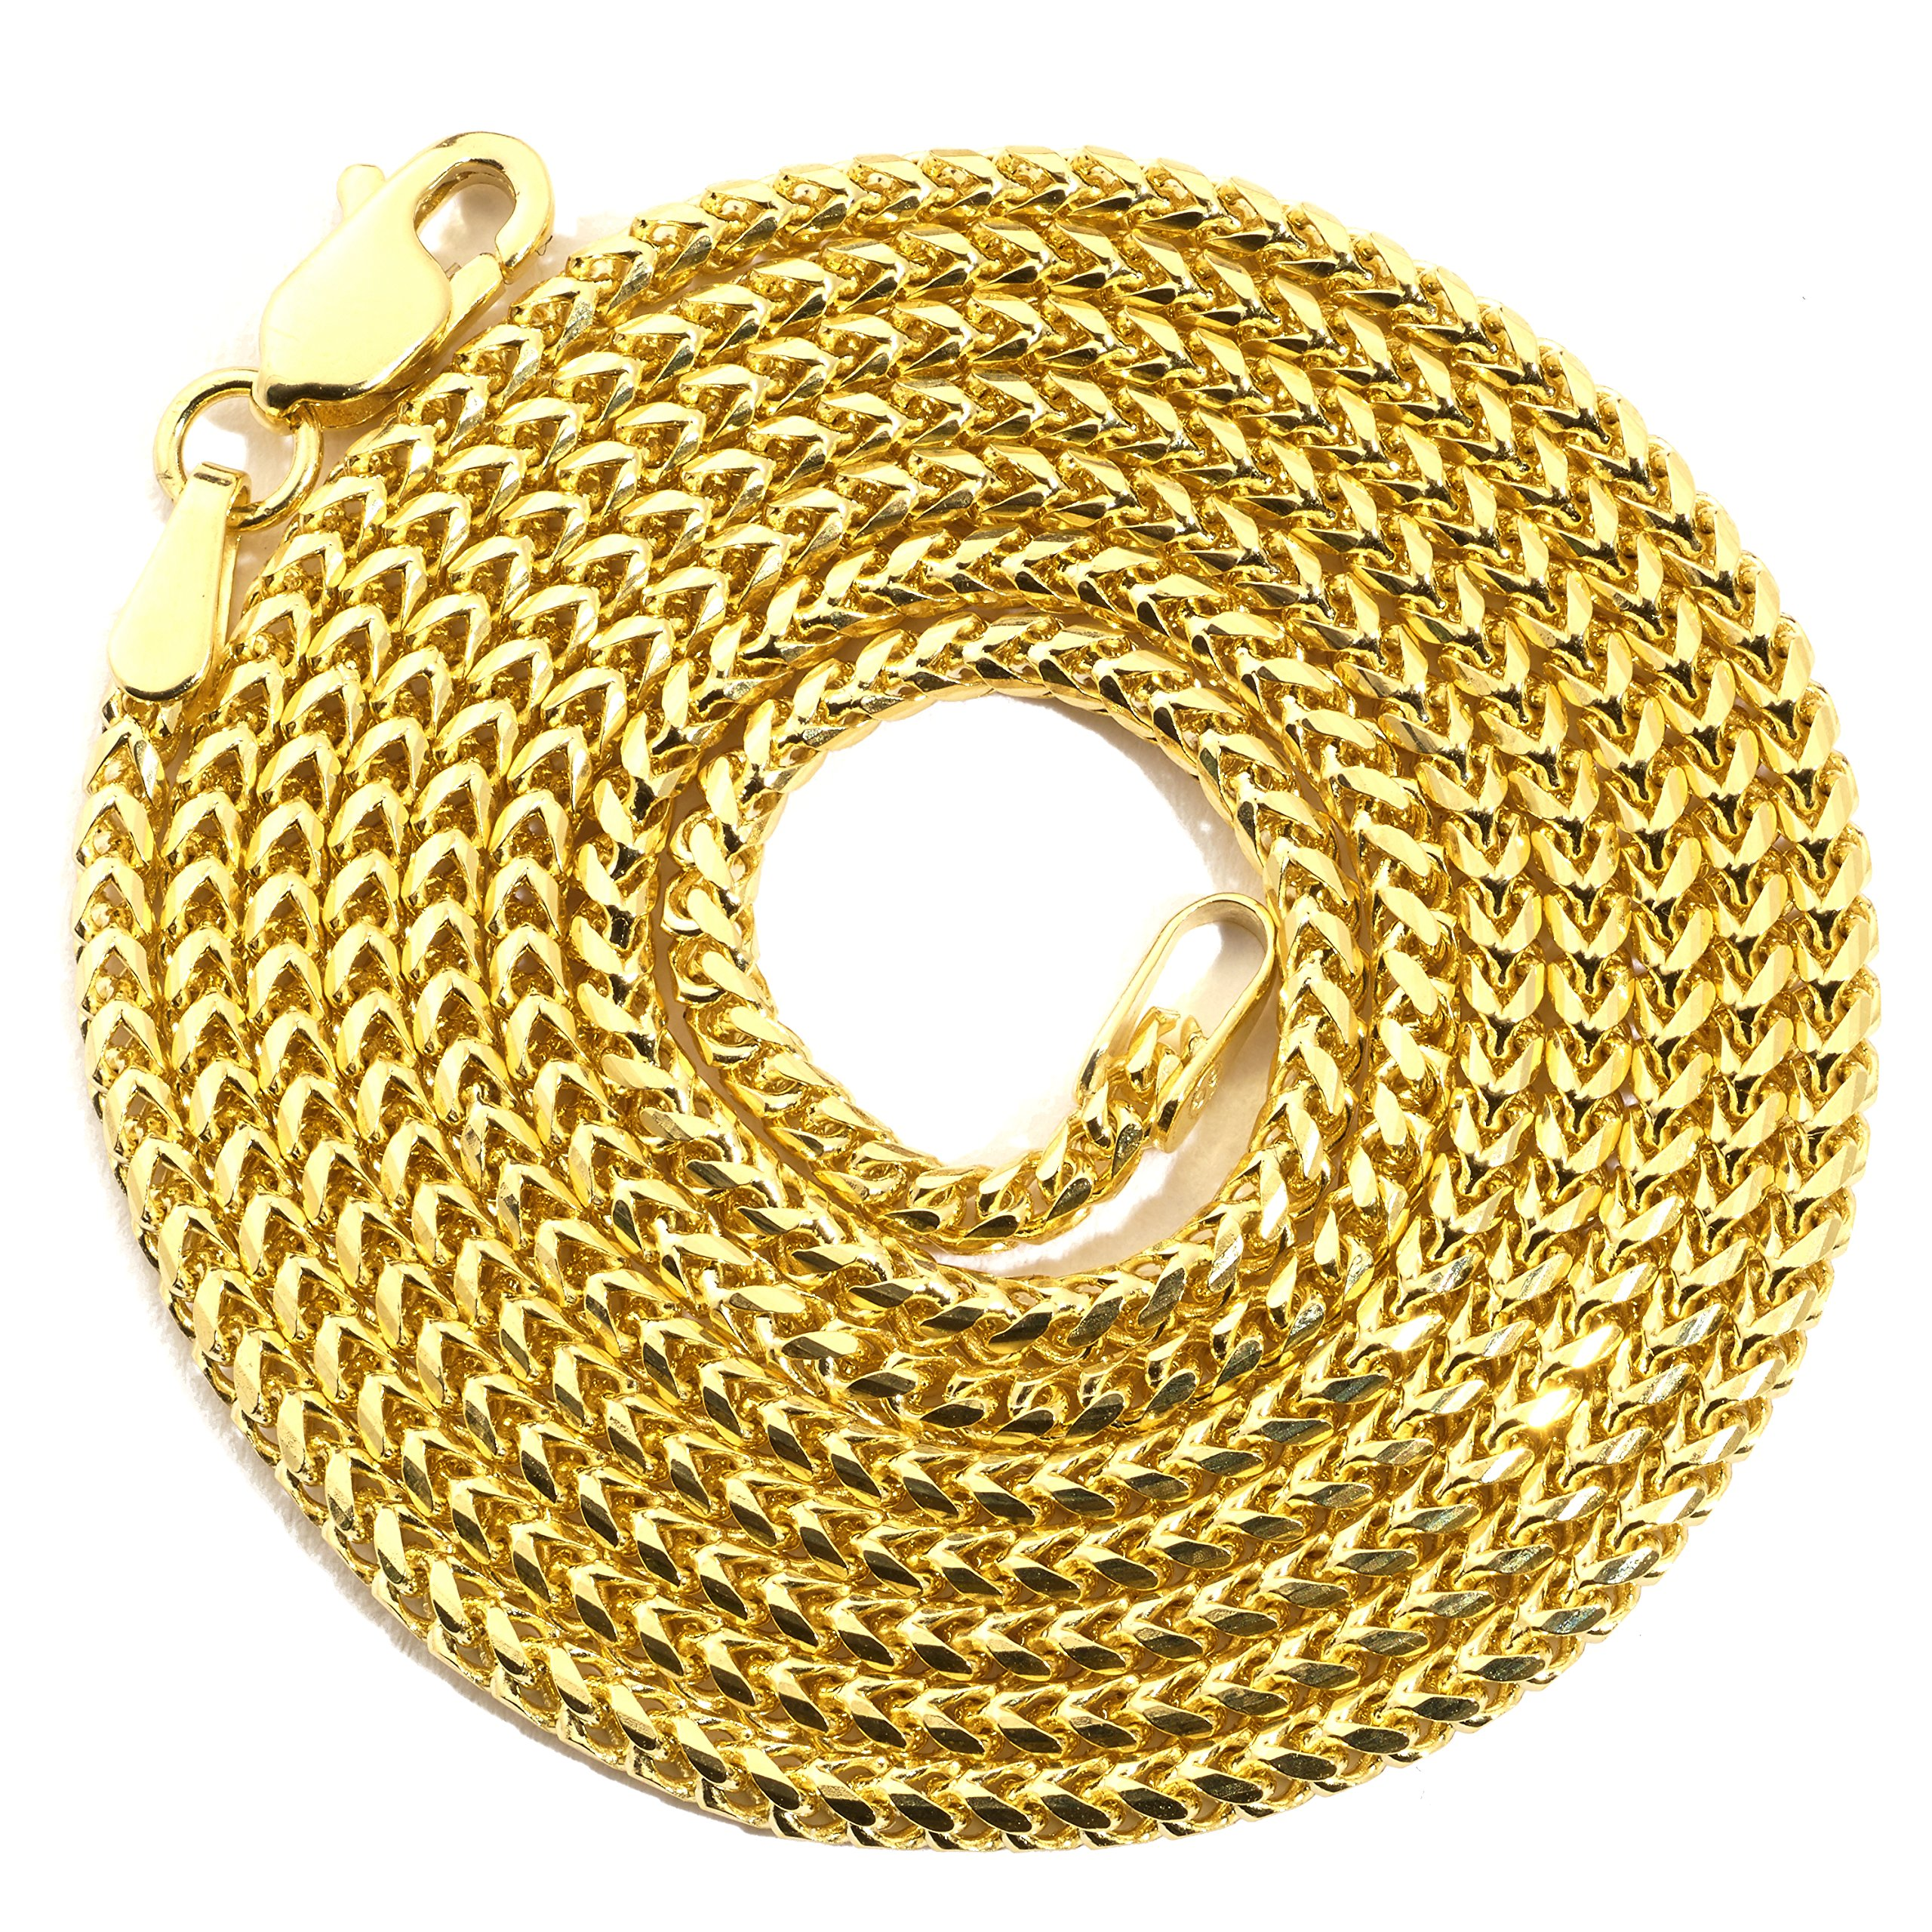 LoveBling 10K Yellow Gold 1.5 mm 30'' Solid Diamond Cut Franco Chain Necklace with Lobster Lock